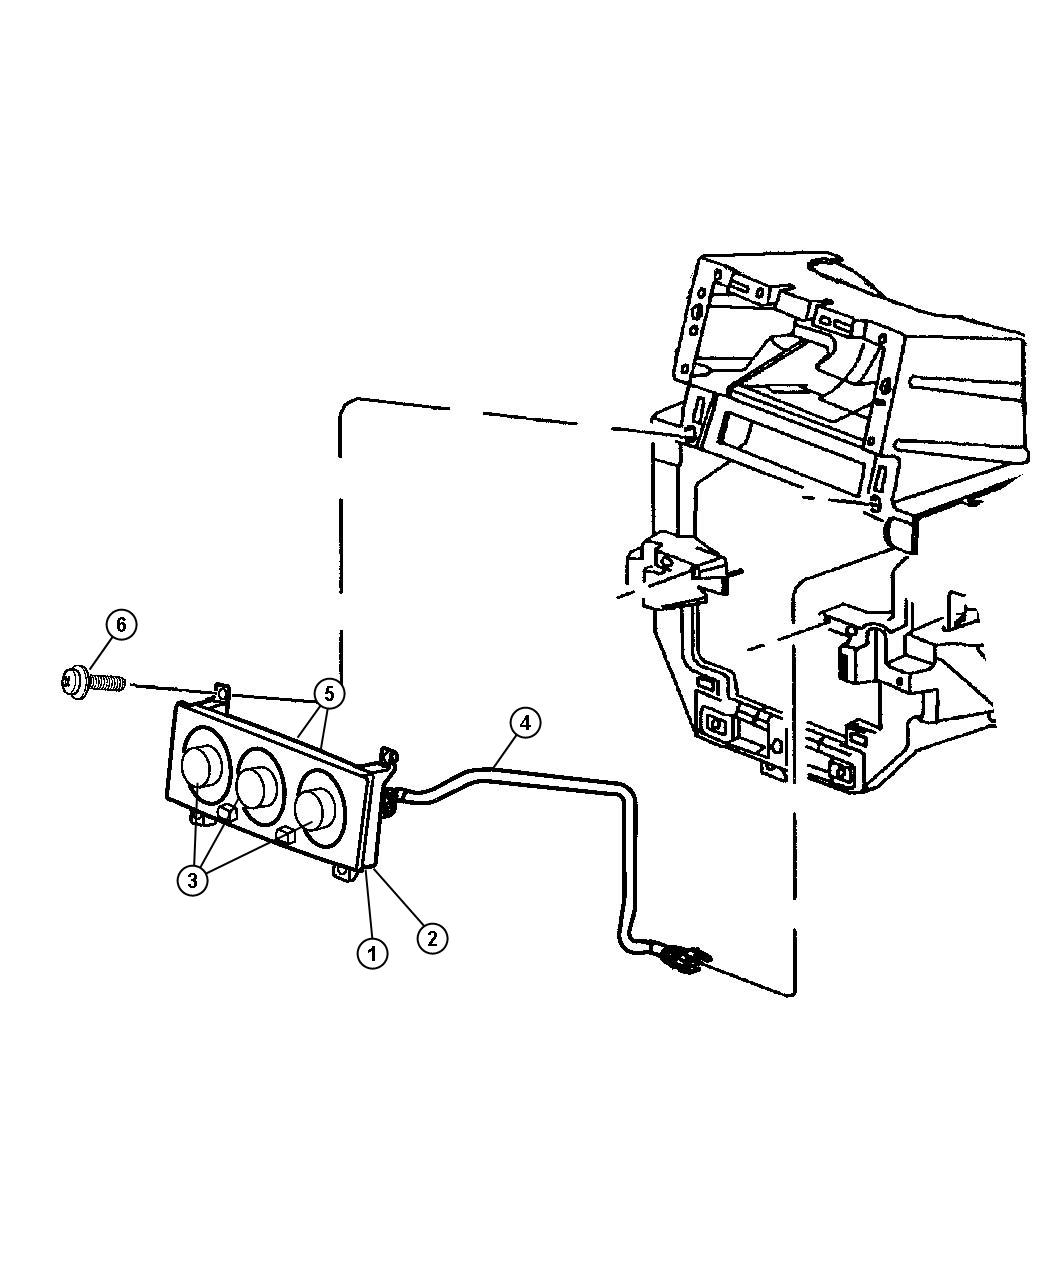 Jeep Grand Cherokee Vacuum harness. Heater and a/c